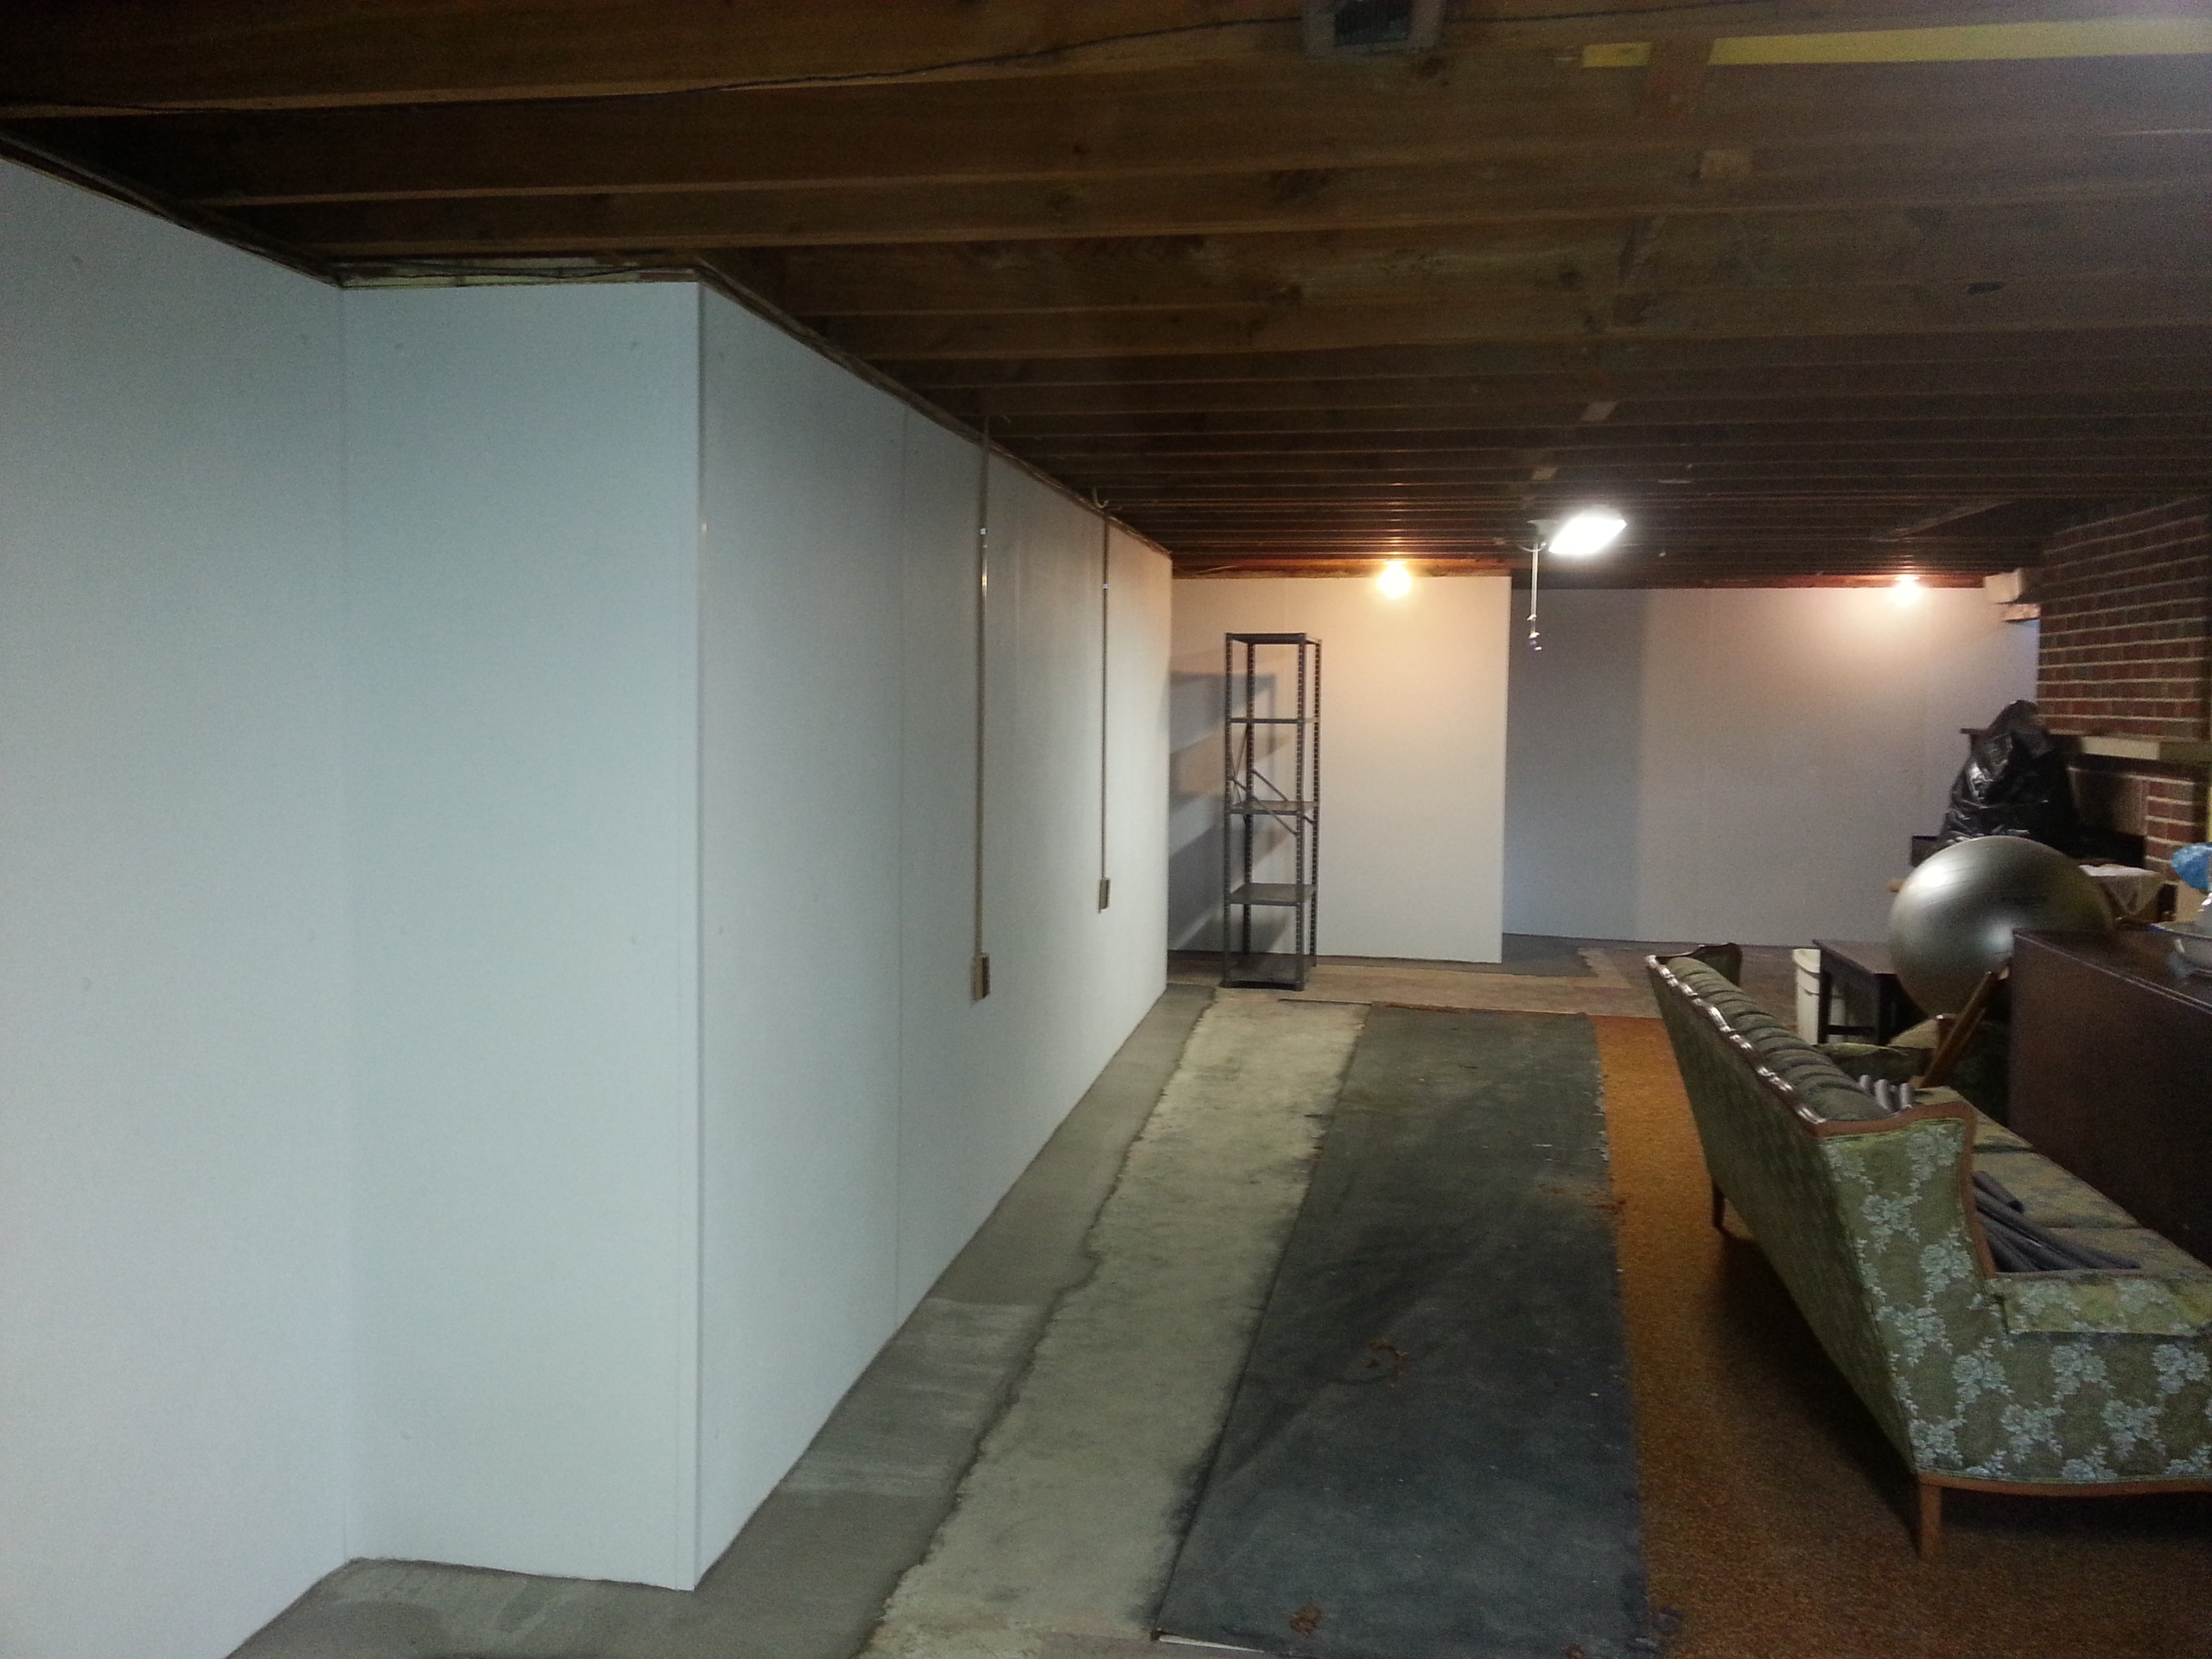 Interior Basement Wall Waterproofing Systemspioneer basement solutionsbasement waterproofing systems pioneer